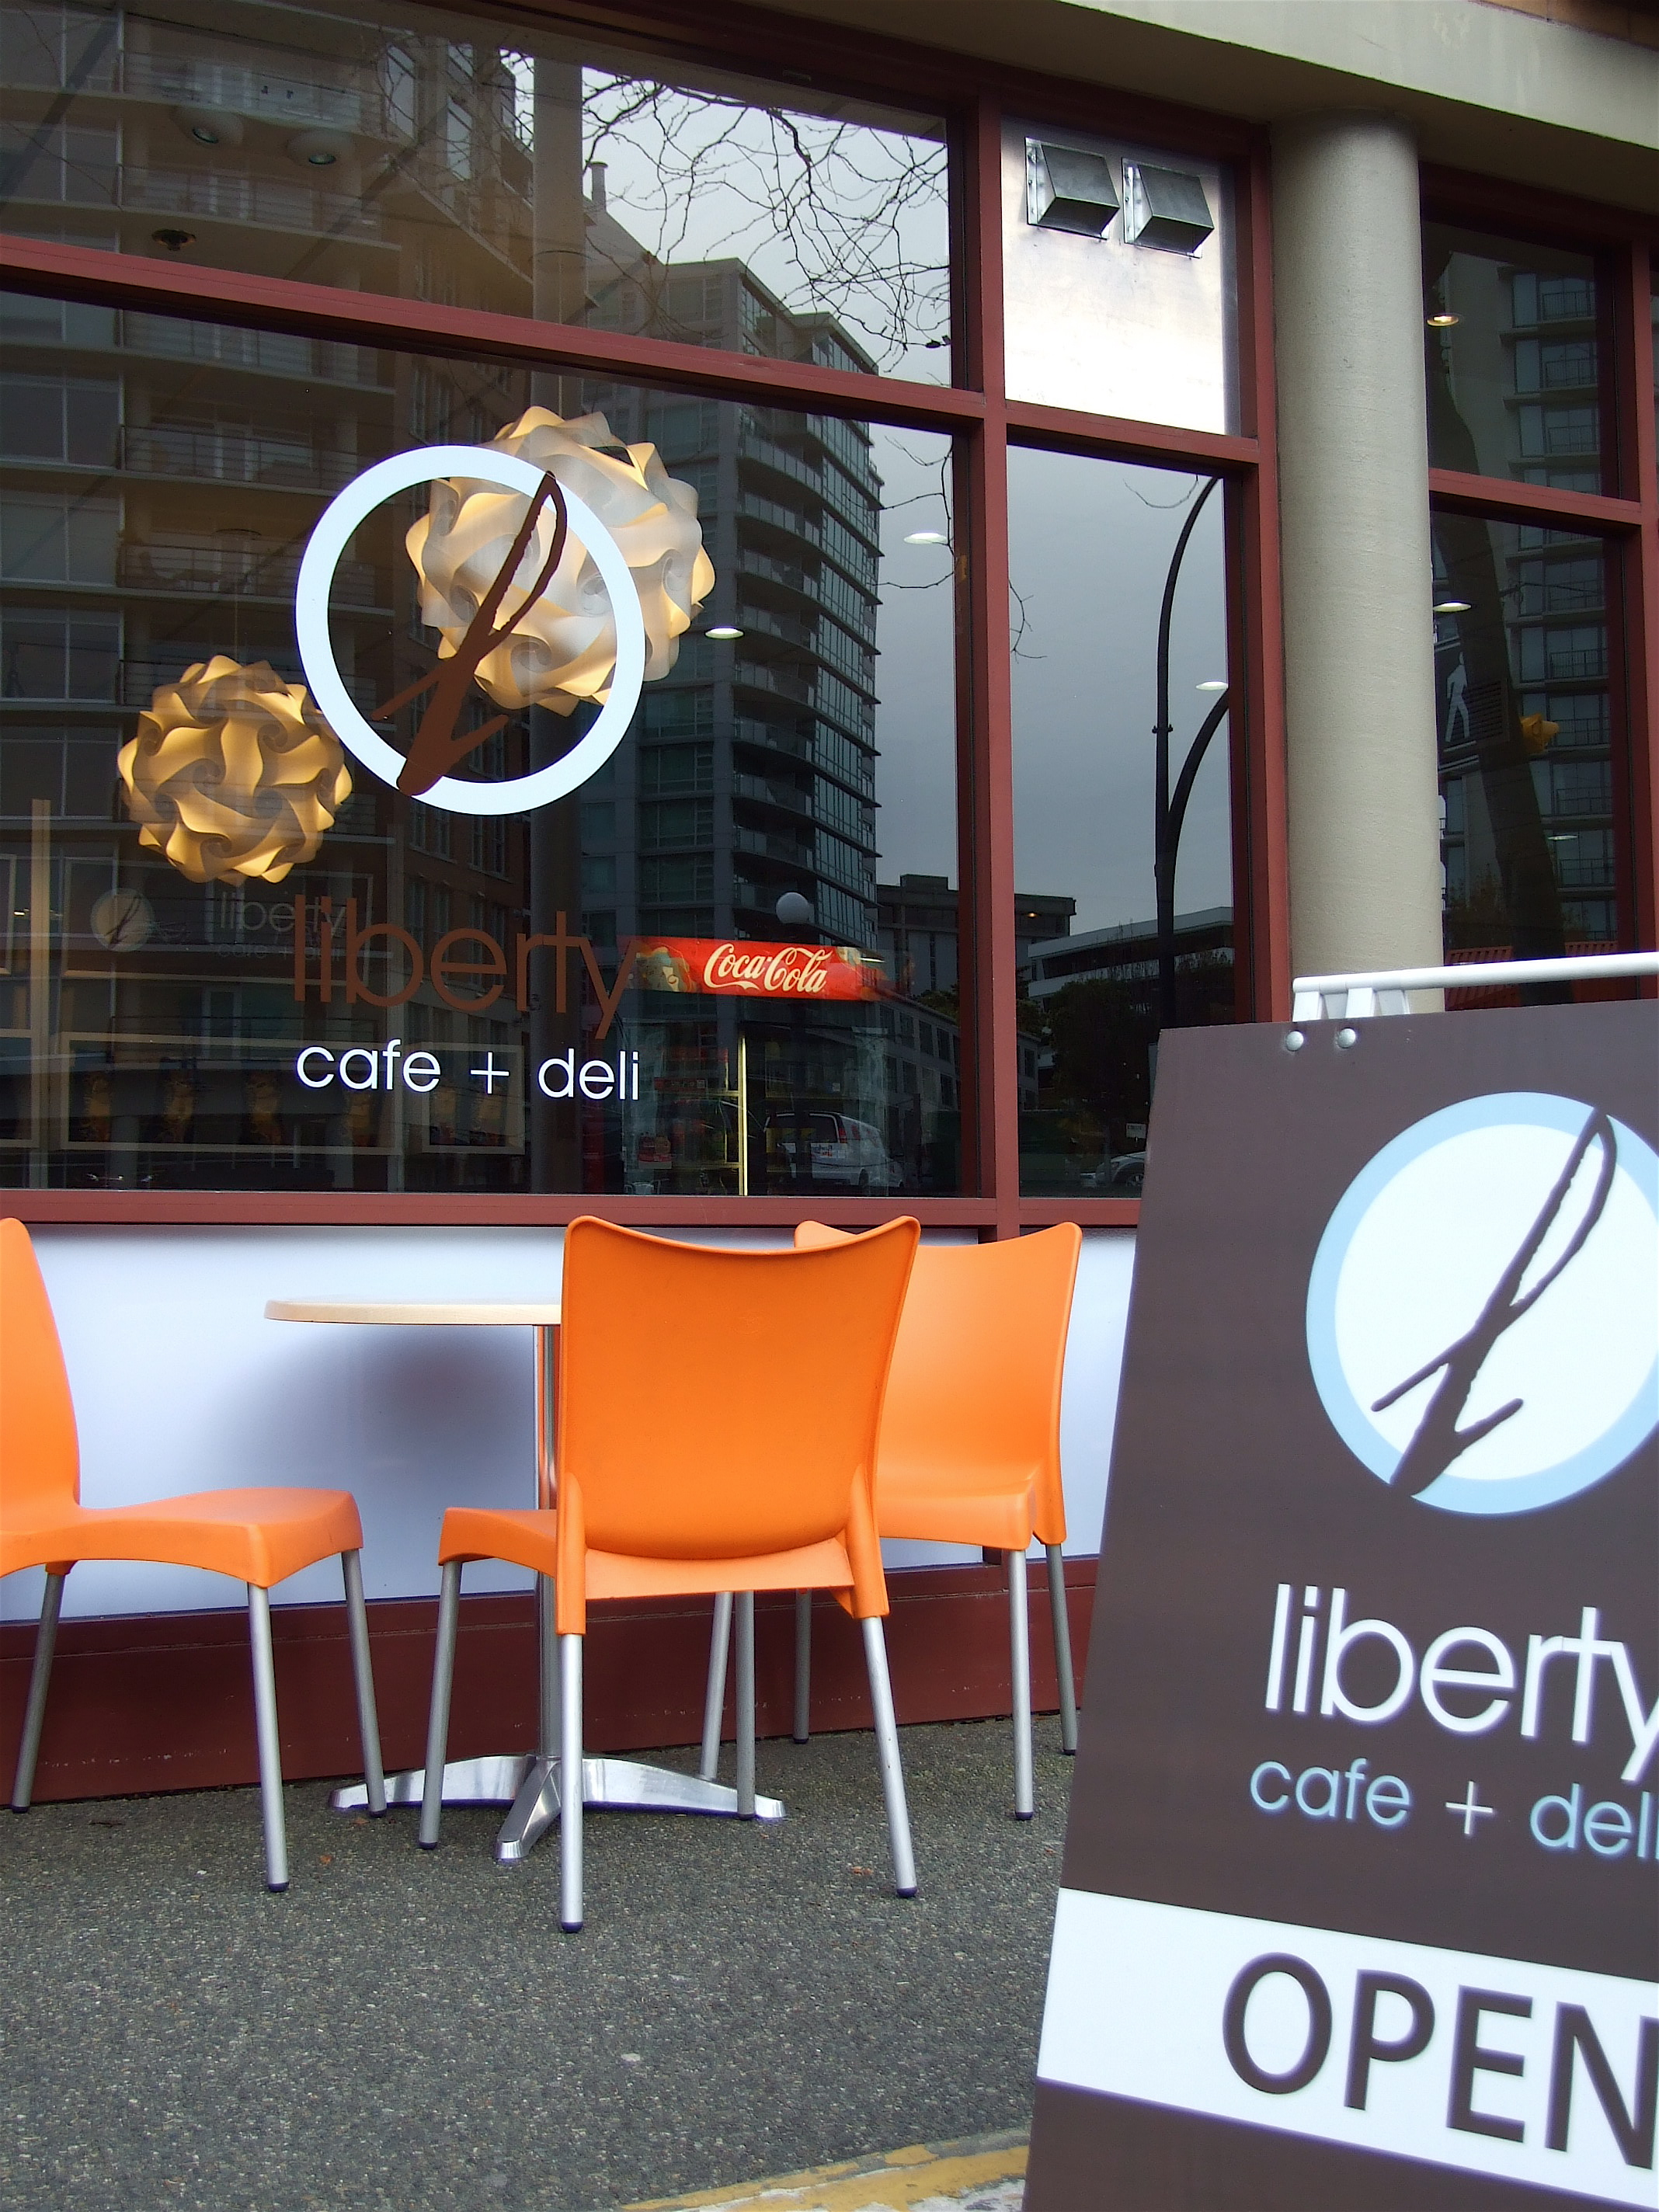 liberty cafe_storefront.JPG